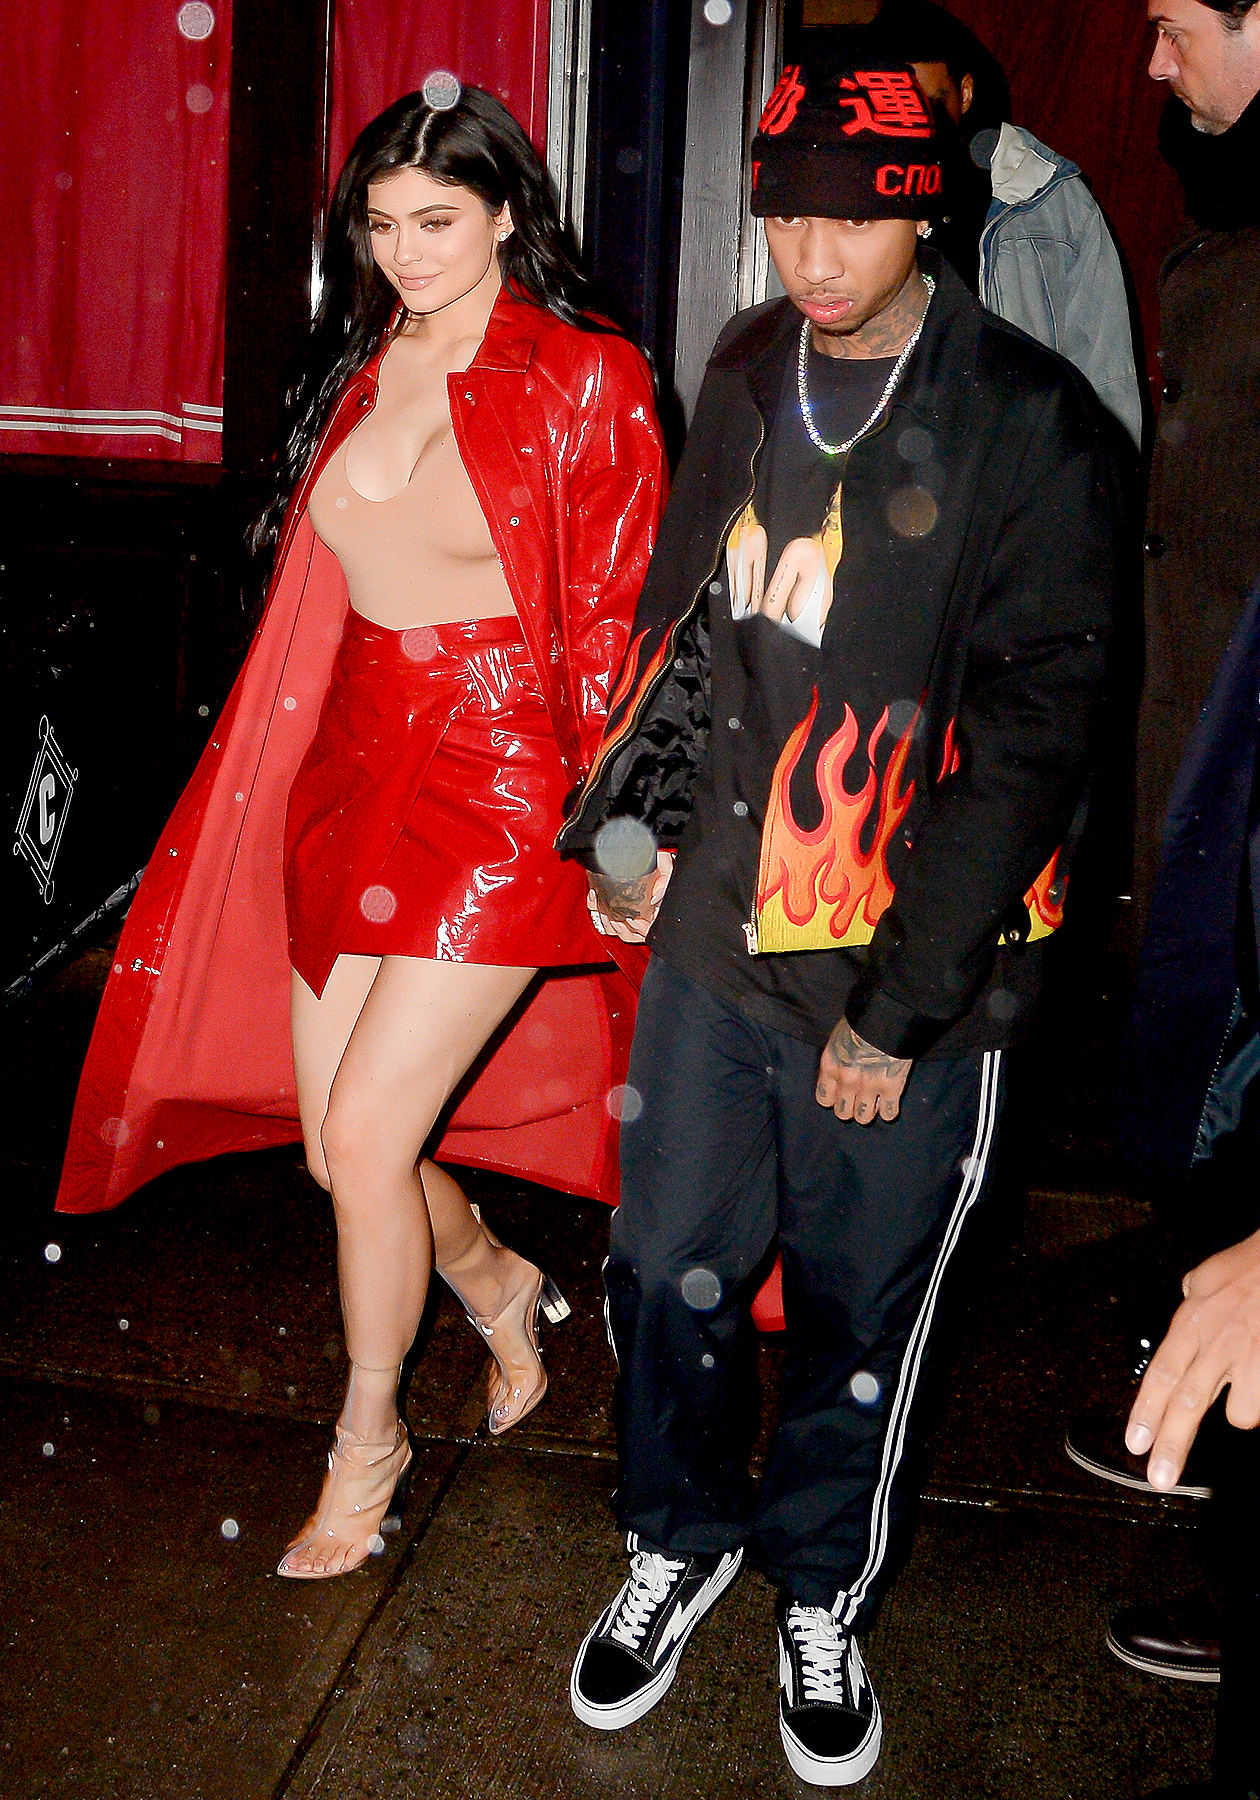 Kylie Jenner and Tyga are seen on January 17, 2017 in New York City.